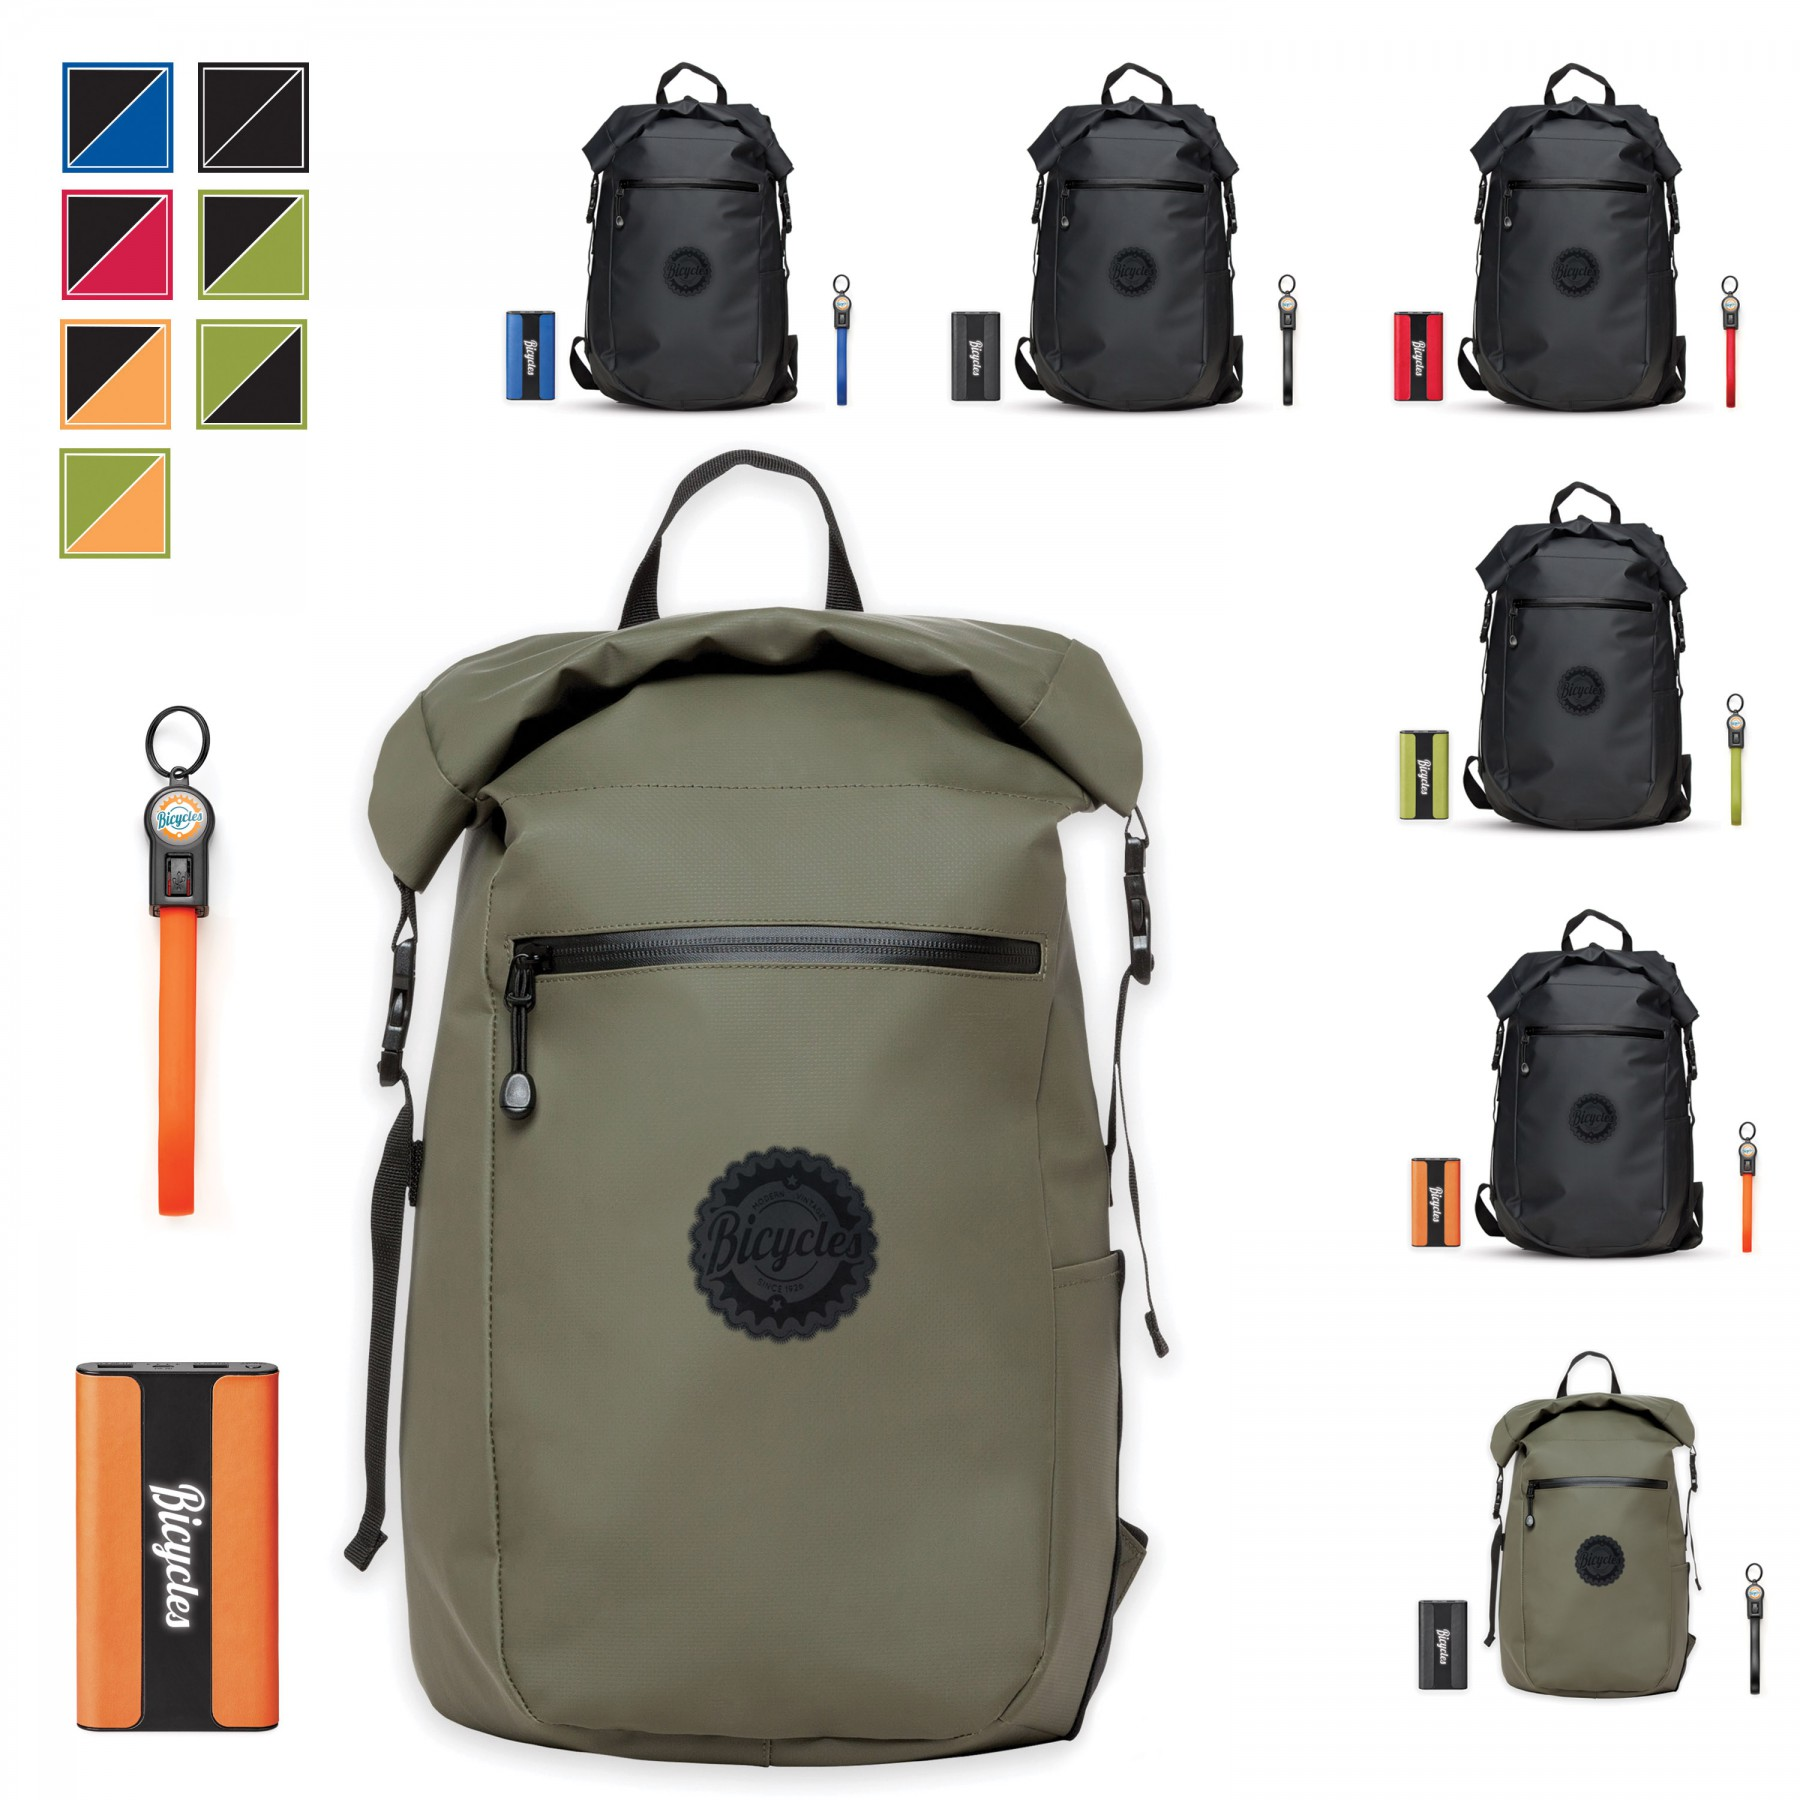 Call Of The Wild Backpack Donald Startup Bundle, BB123, Full Colour Imprint